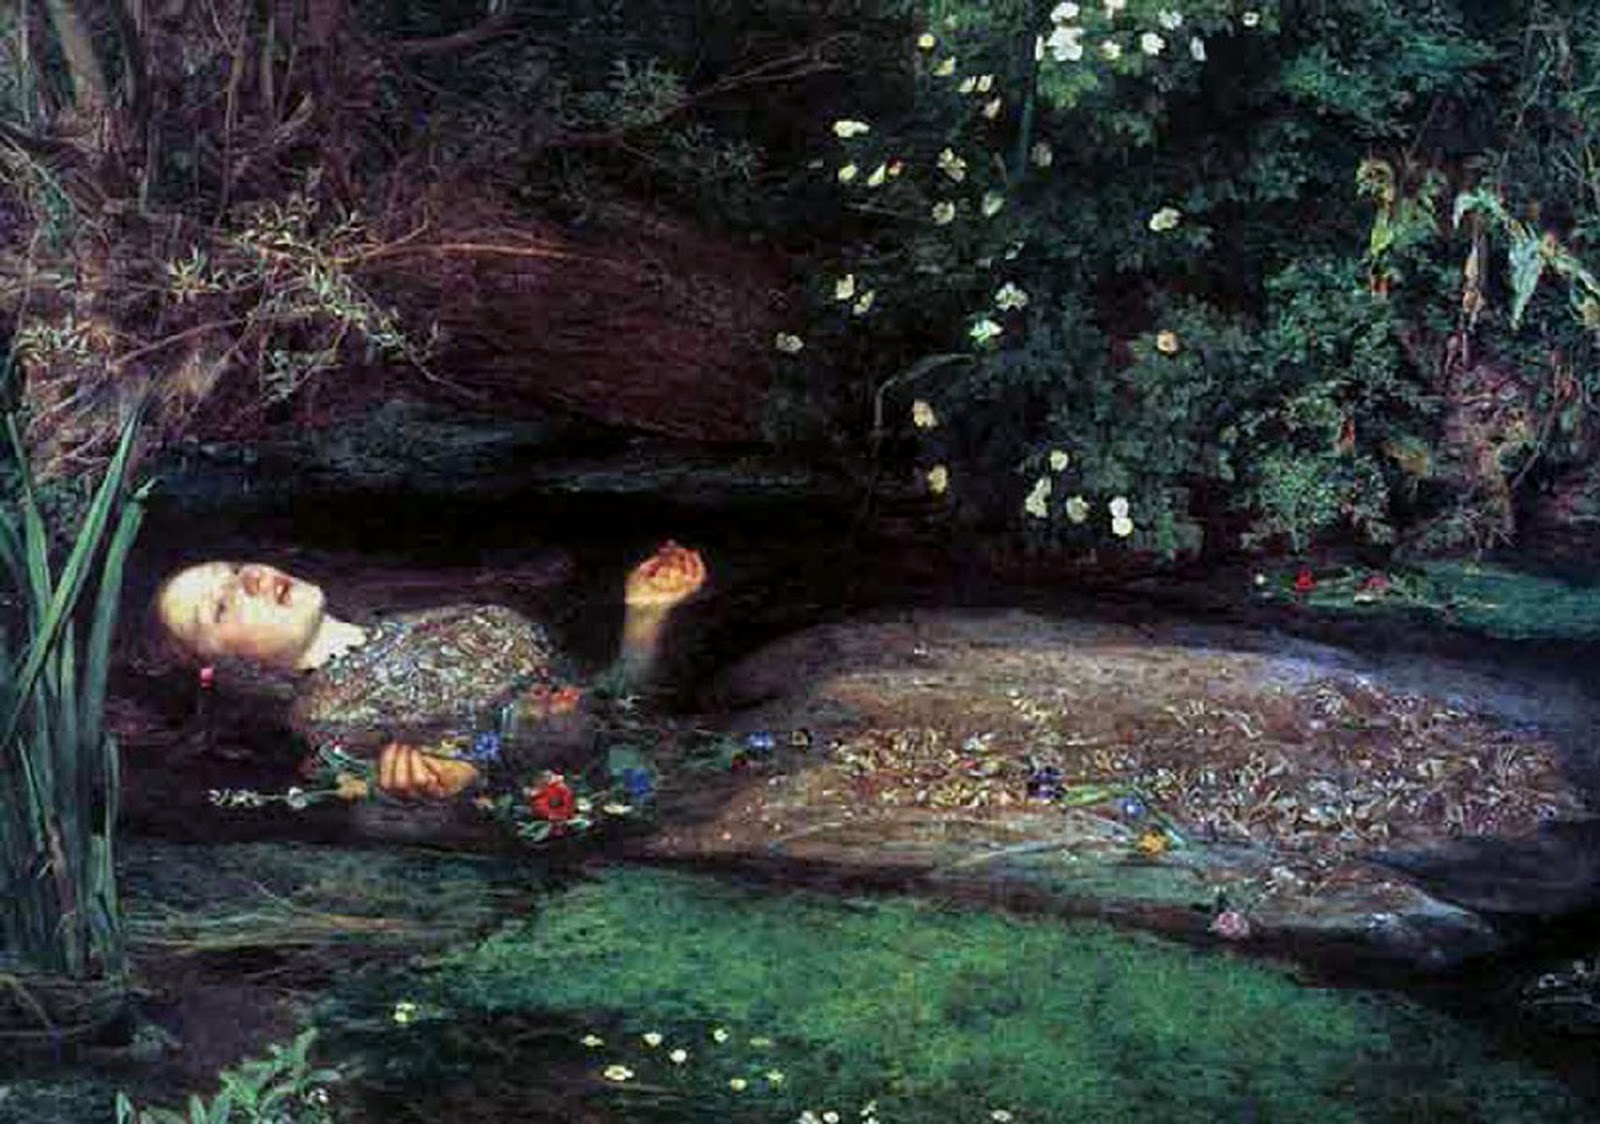 Ophelia S Adornments Blog May 2012: Millais Ophelia Wallpaper